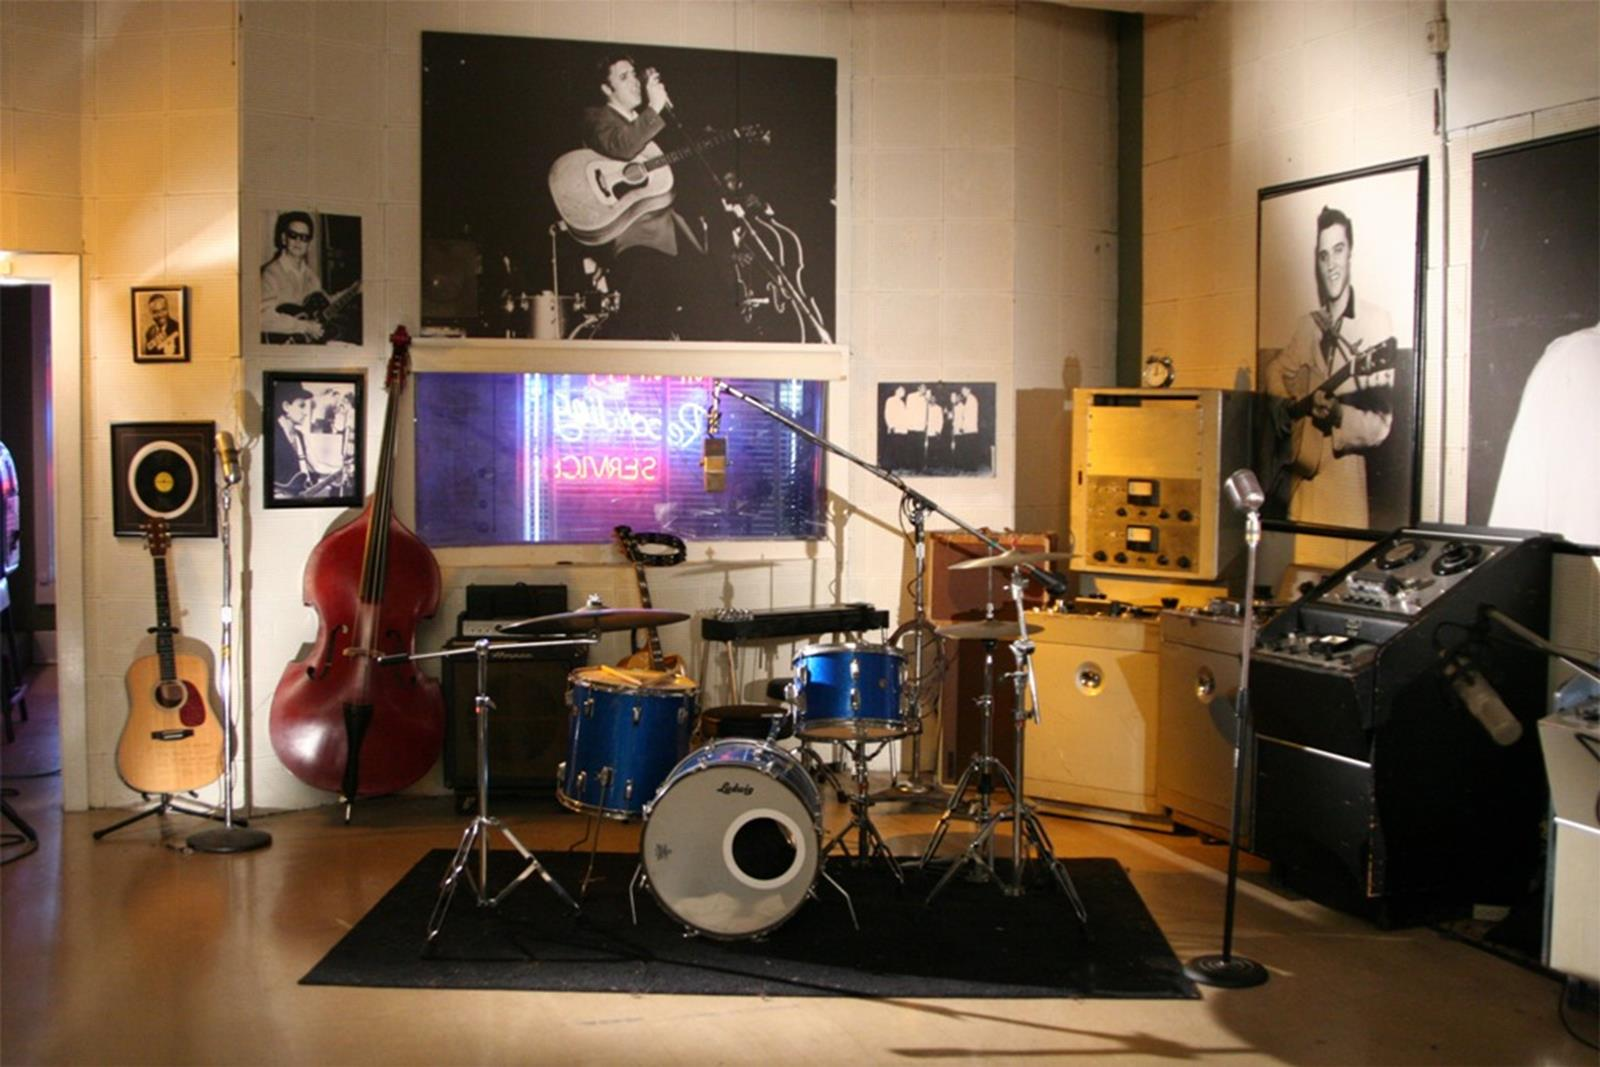 Inside the studio. Credit: Sun Studios